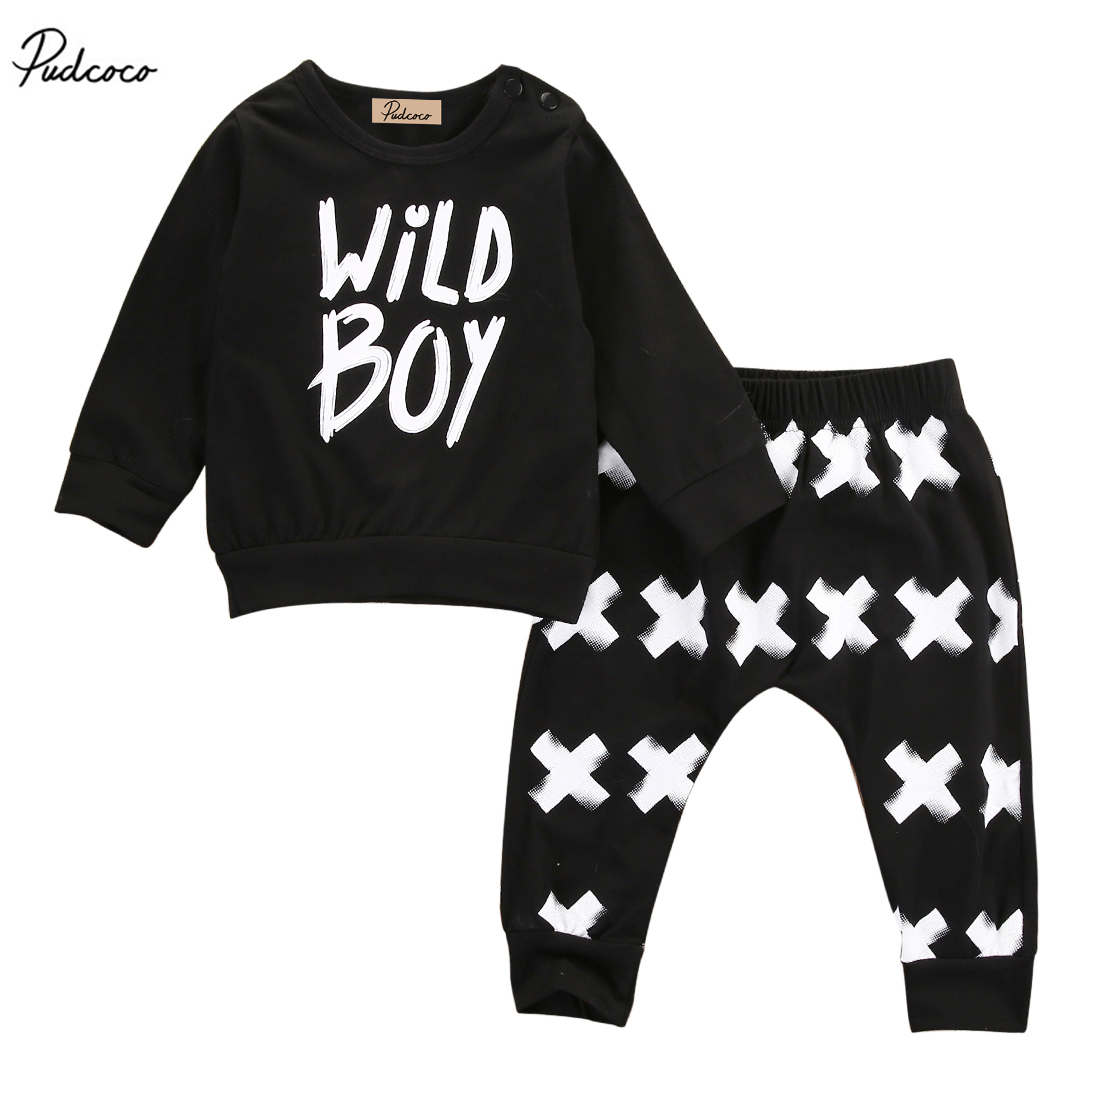 Wild Boy Newborn Baby Boys Infant Long Sleeve T-Shirt Tops X Print Pants Clothes Outfit Set 0-24M humor bear 2017 3pcs newborn infant baby boy clothes tops long sleeve shirt pants boy set baby boy clothes children clothes